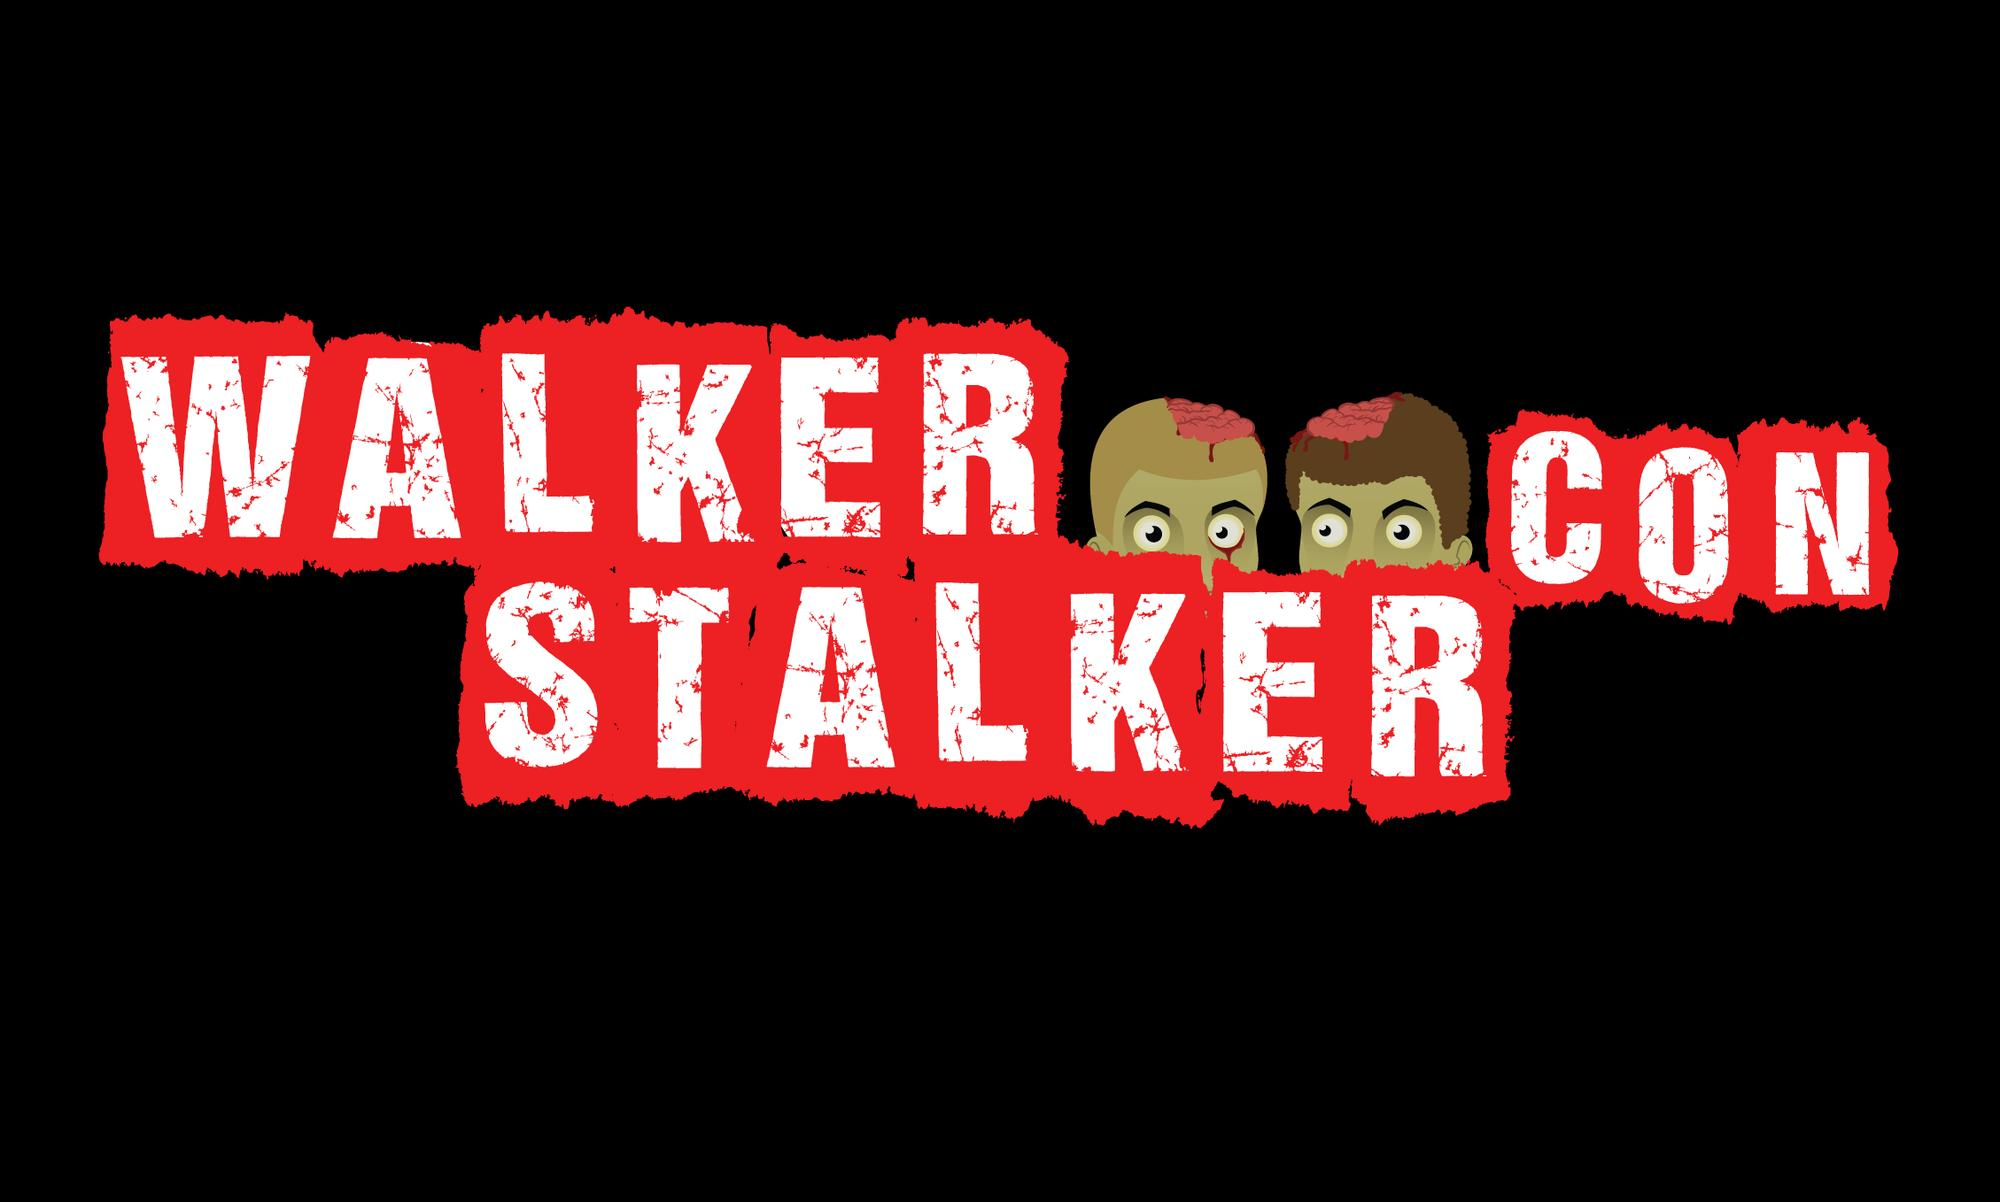 WALKER STALKER WILL DONATE PORTION OF TICKET SALES TO AMERICAN RED CROSS TO AID IN GATLINBURG TN WILDFIRE DEVASTATION.